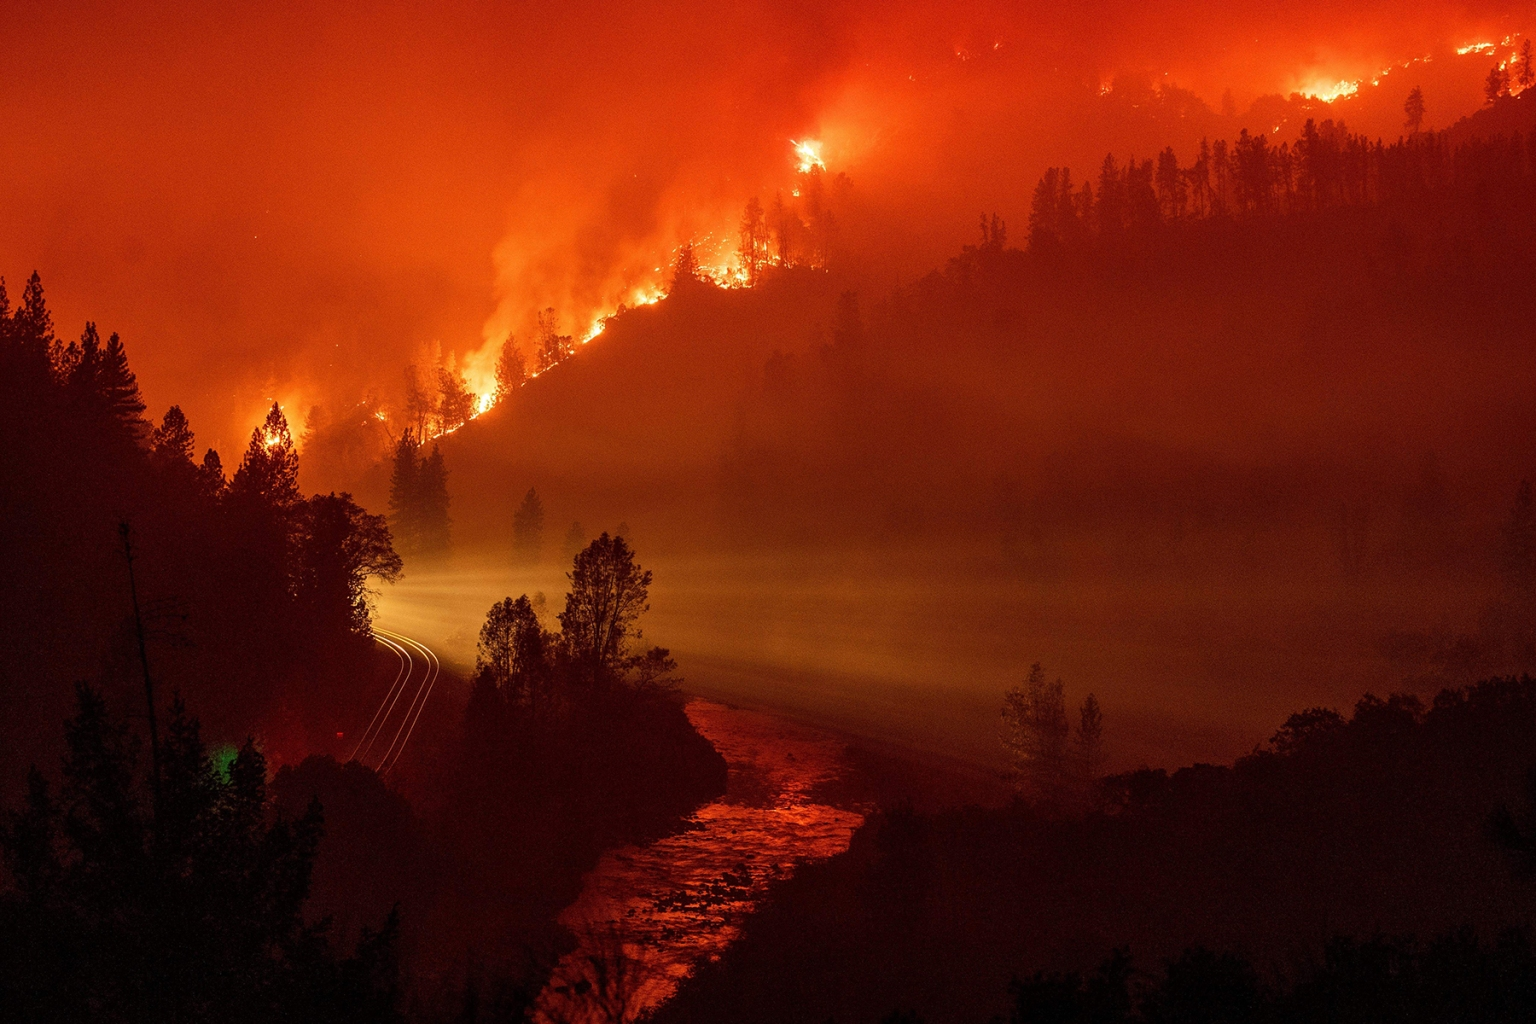 Light from a train is seen as it rounds a bend near the Sacramento River as flames from the Delta Fire fill a valley in Delta, California, on Sept. 6. JOSH EDELSON/AFP/Getty Images